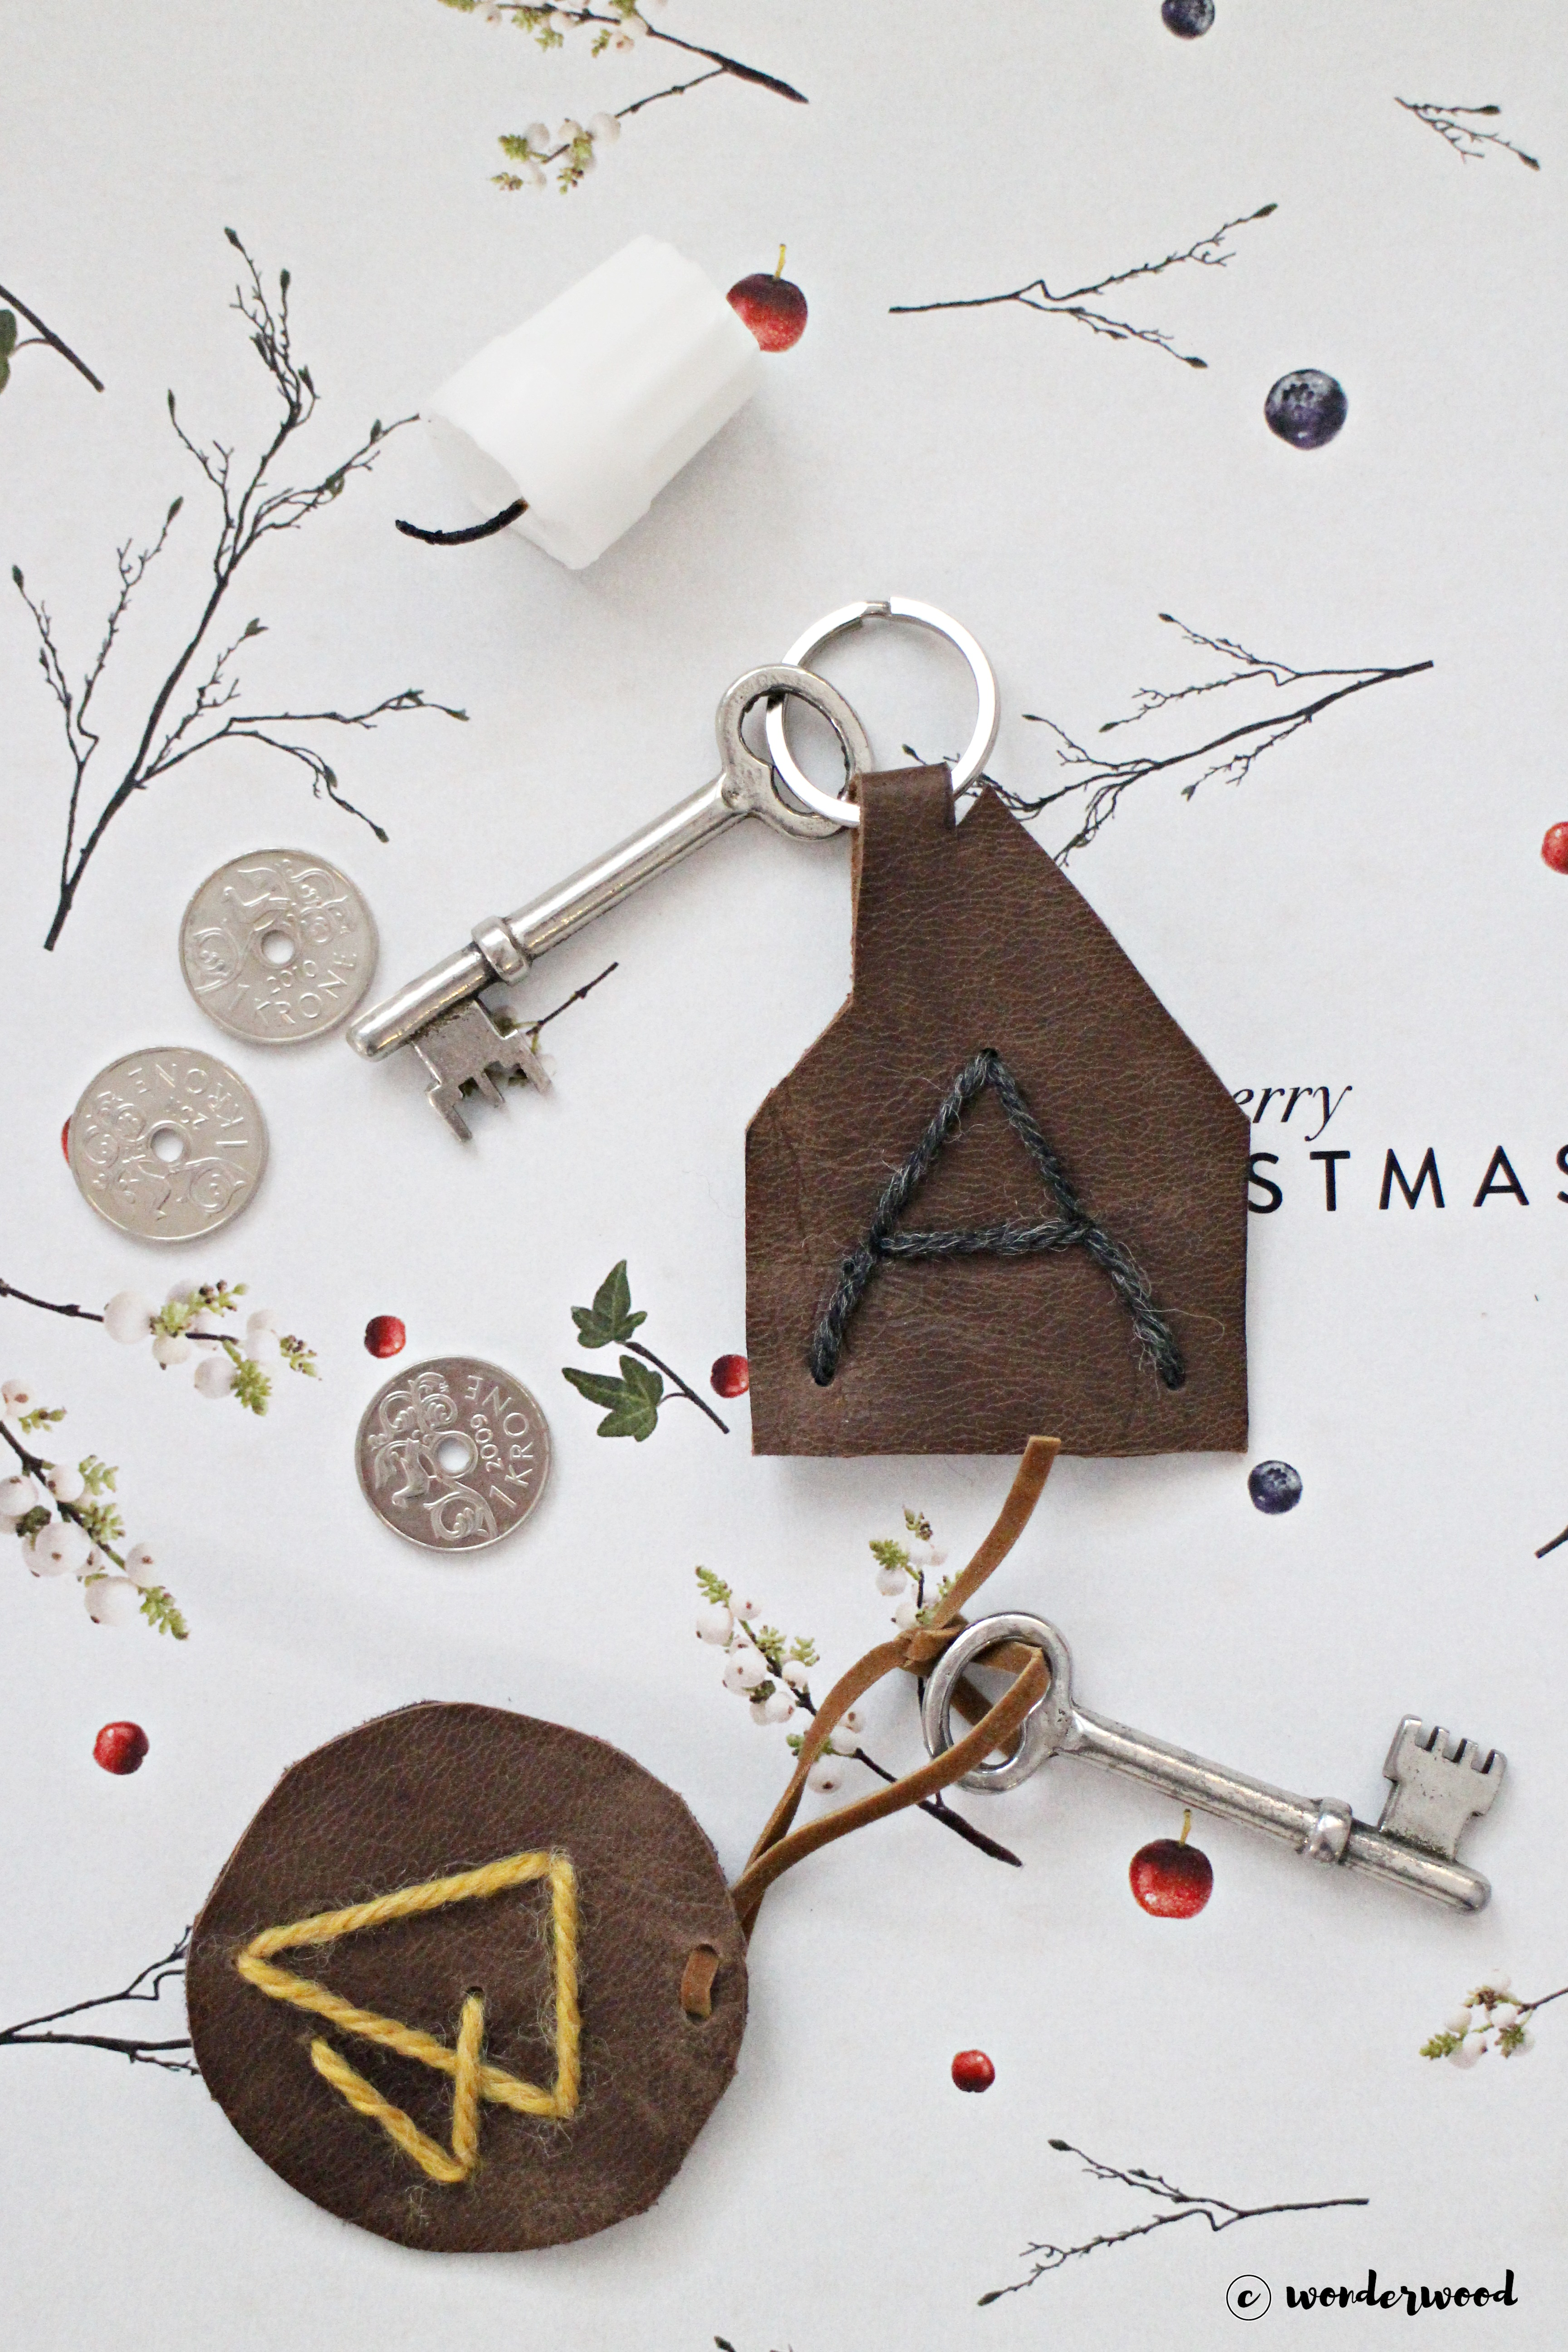 Tips til hjemmelagde julegaver 8: diy nøkkelanheng i skinn // Homemade Christmas gift ideas 8: diy leather keychain